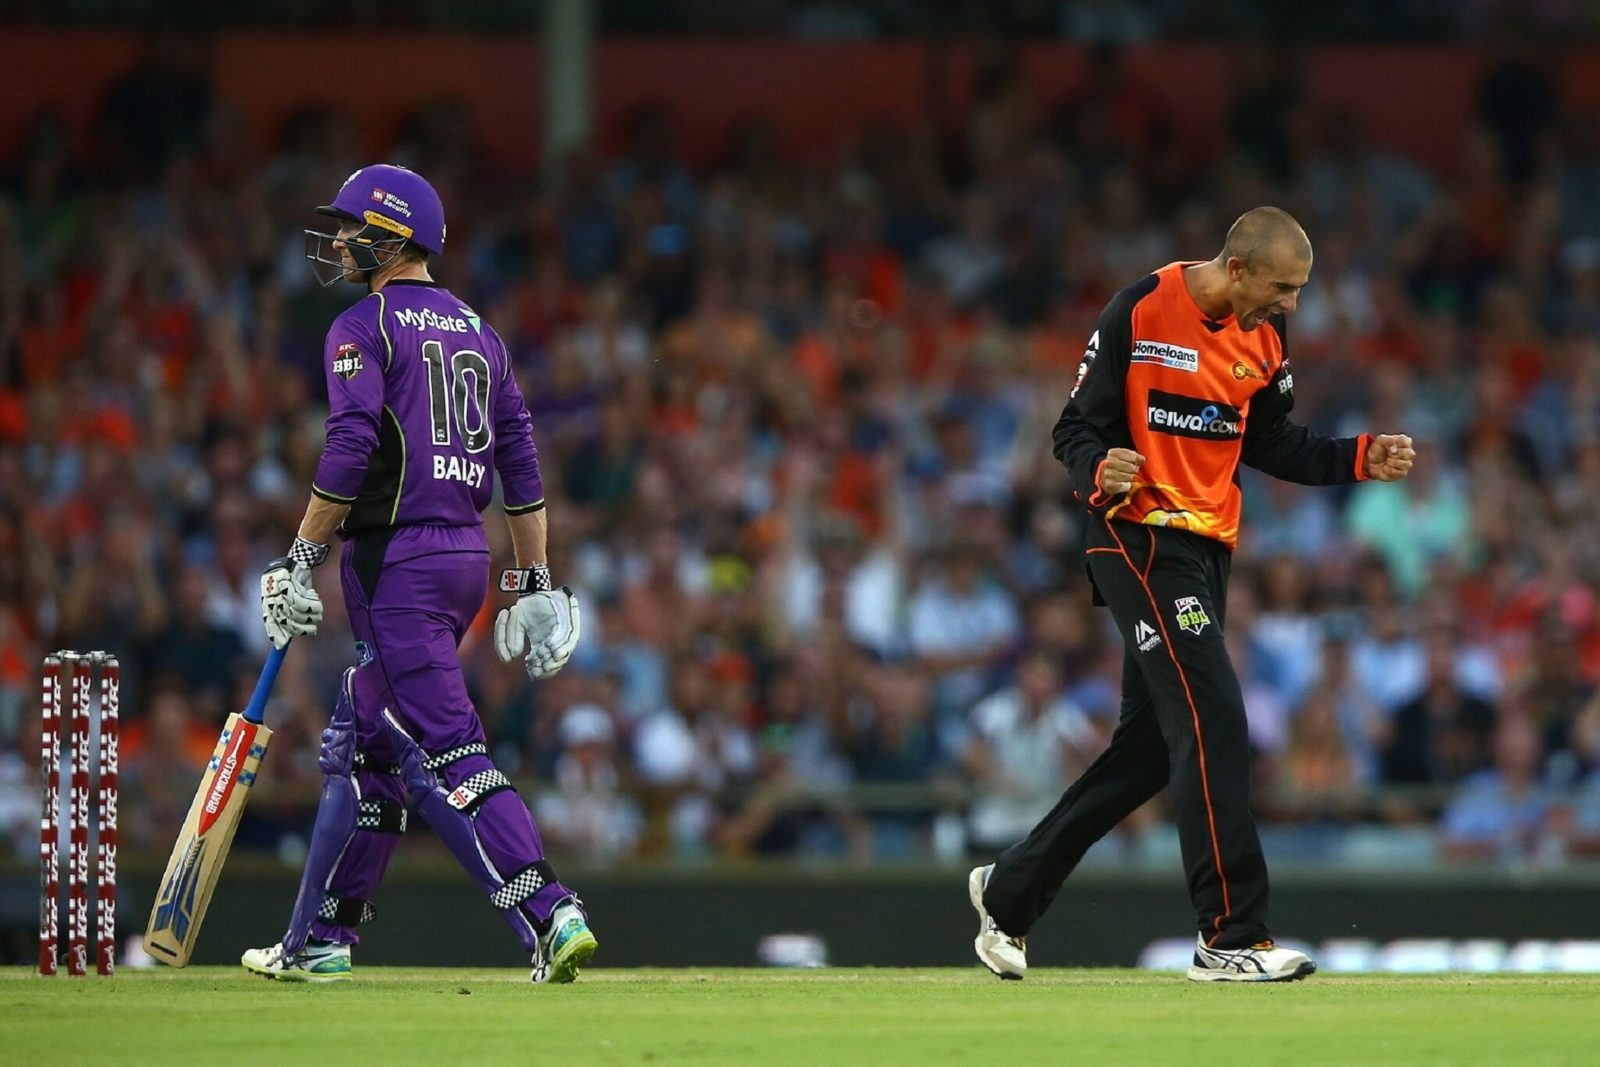 Big Bash League - Perth Scorchers vs Hobart Hurricanes, Burswood, Western Australia